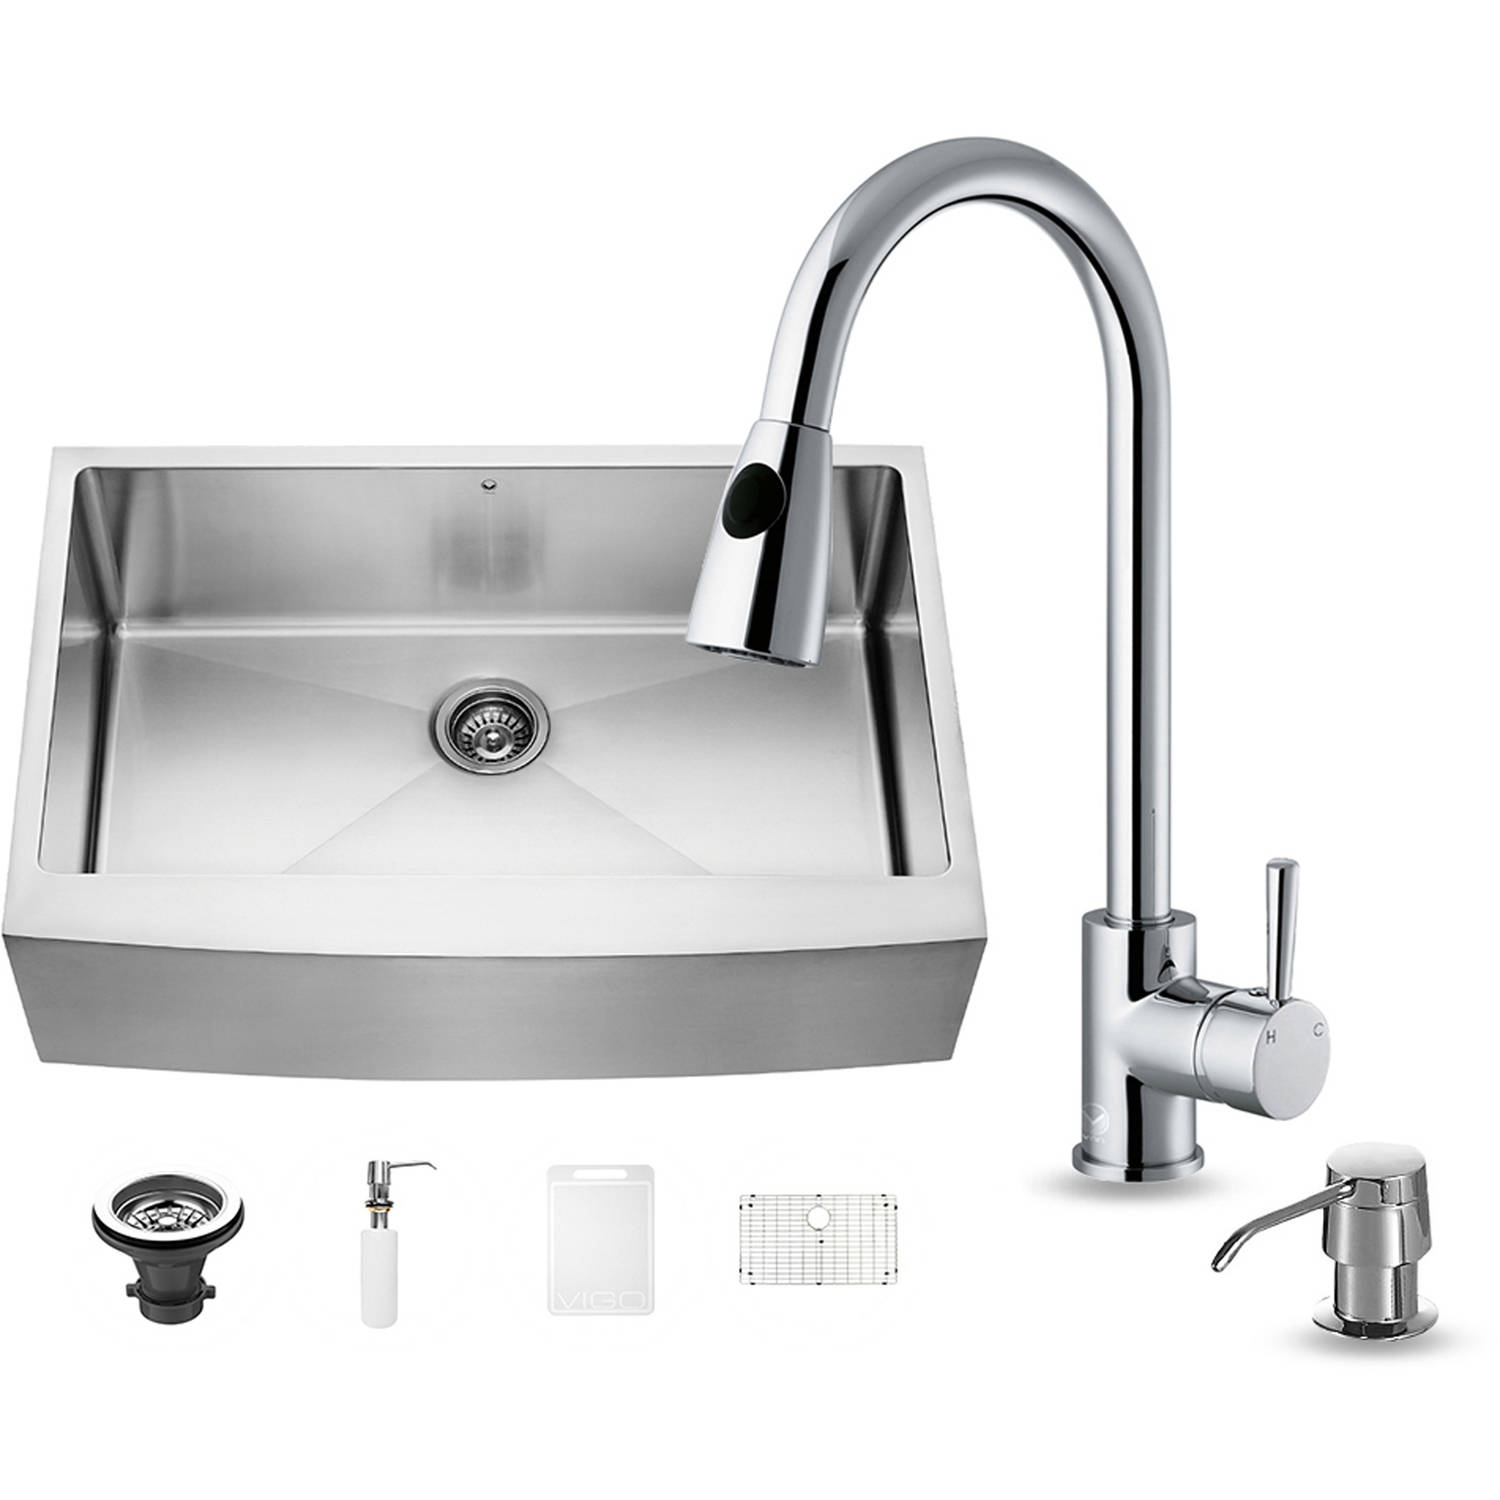 "Vigo All-in-One 33"" Farmhouse Stainless Steel Kitchen Sink and Chrome Faucet Set"